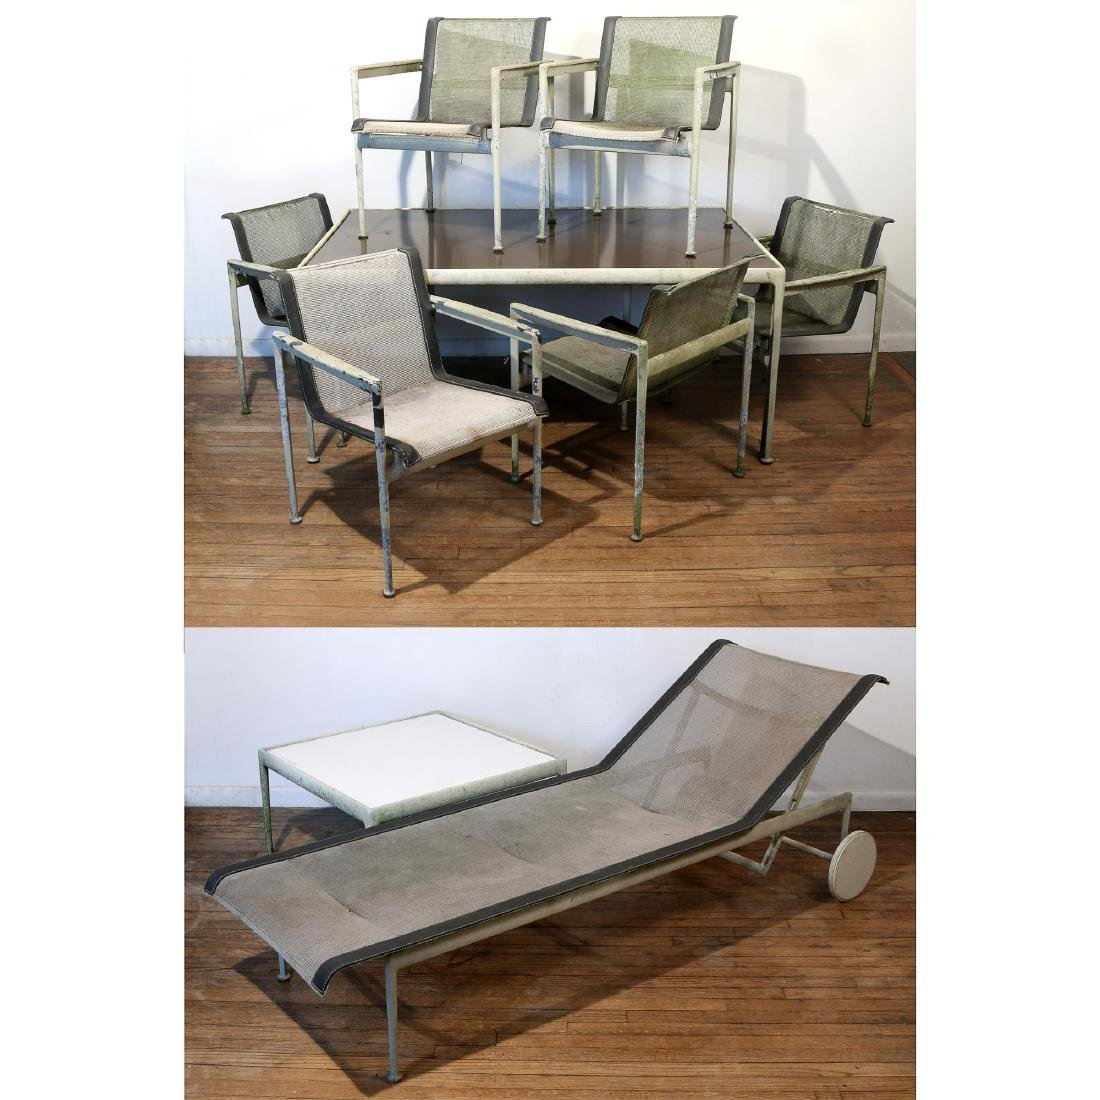 (9pc) RICHARD SCHULTZ PATIO FURNITURE